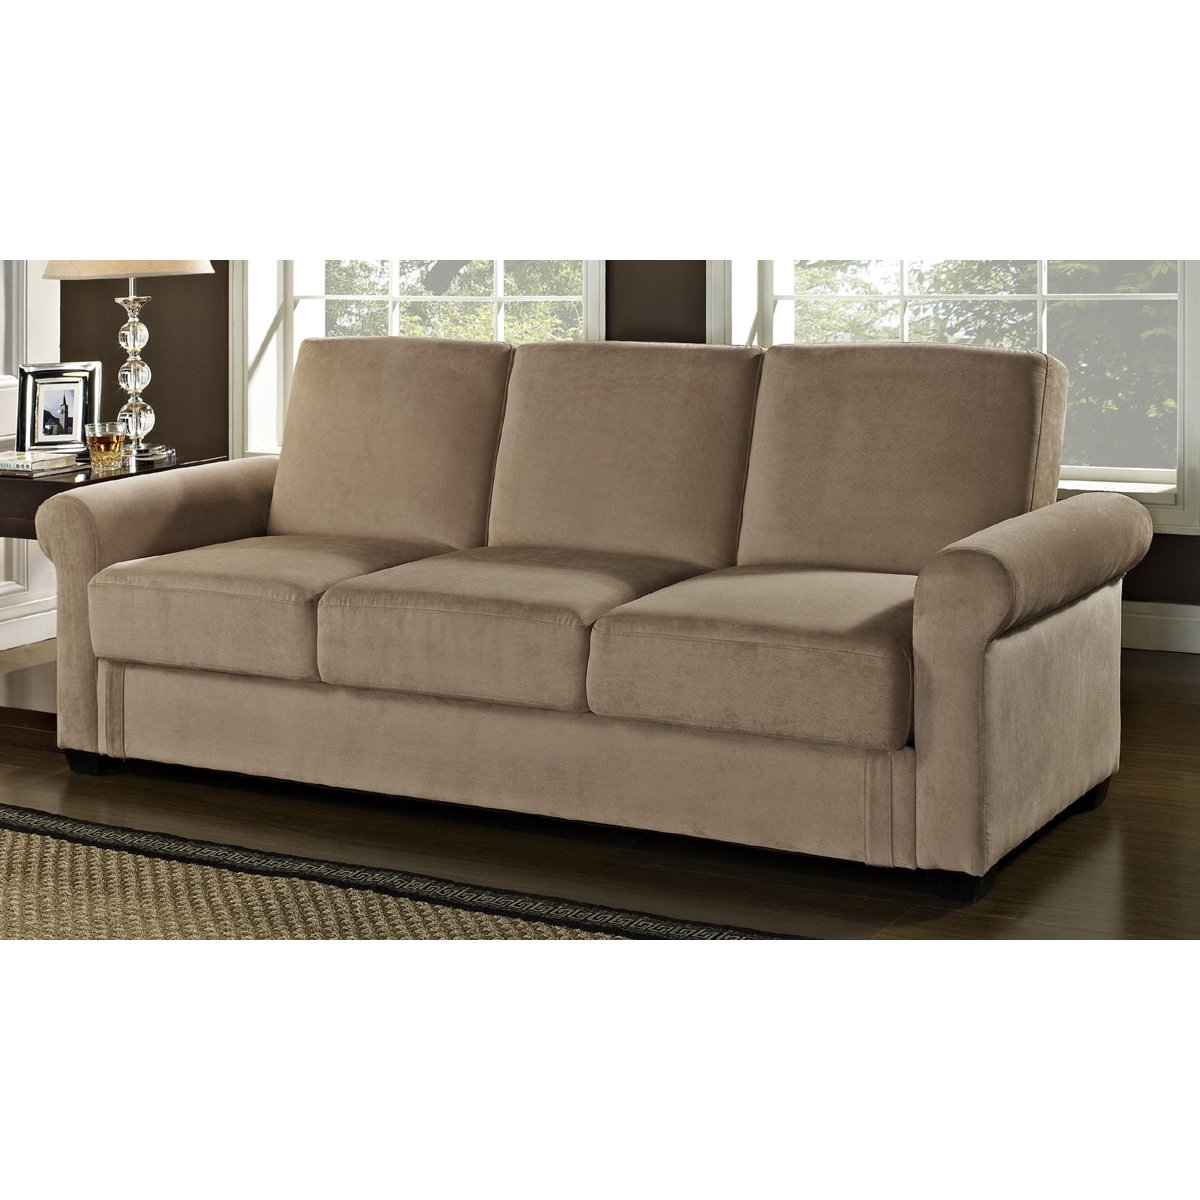 sofa set low cost sectional vancouver with price list